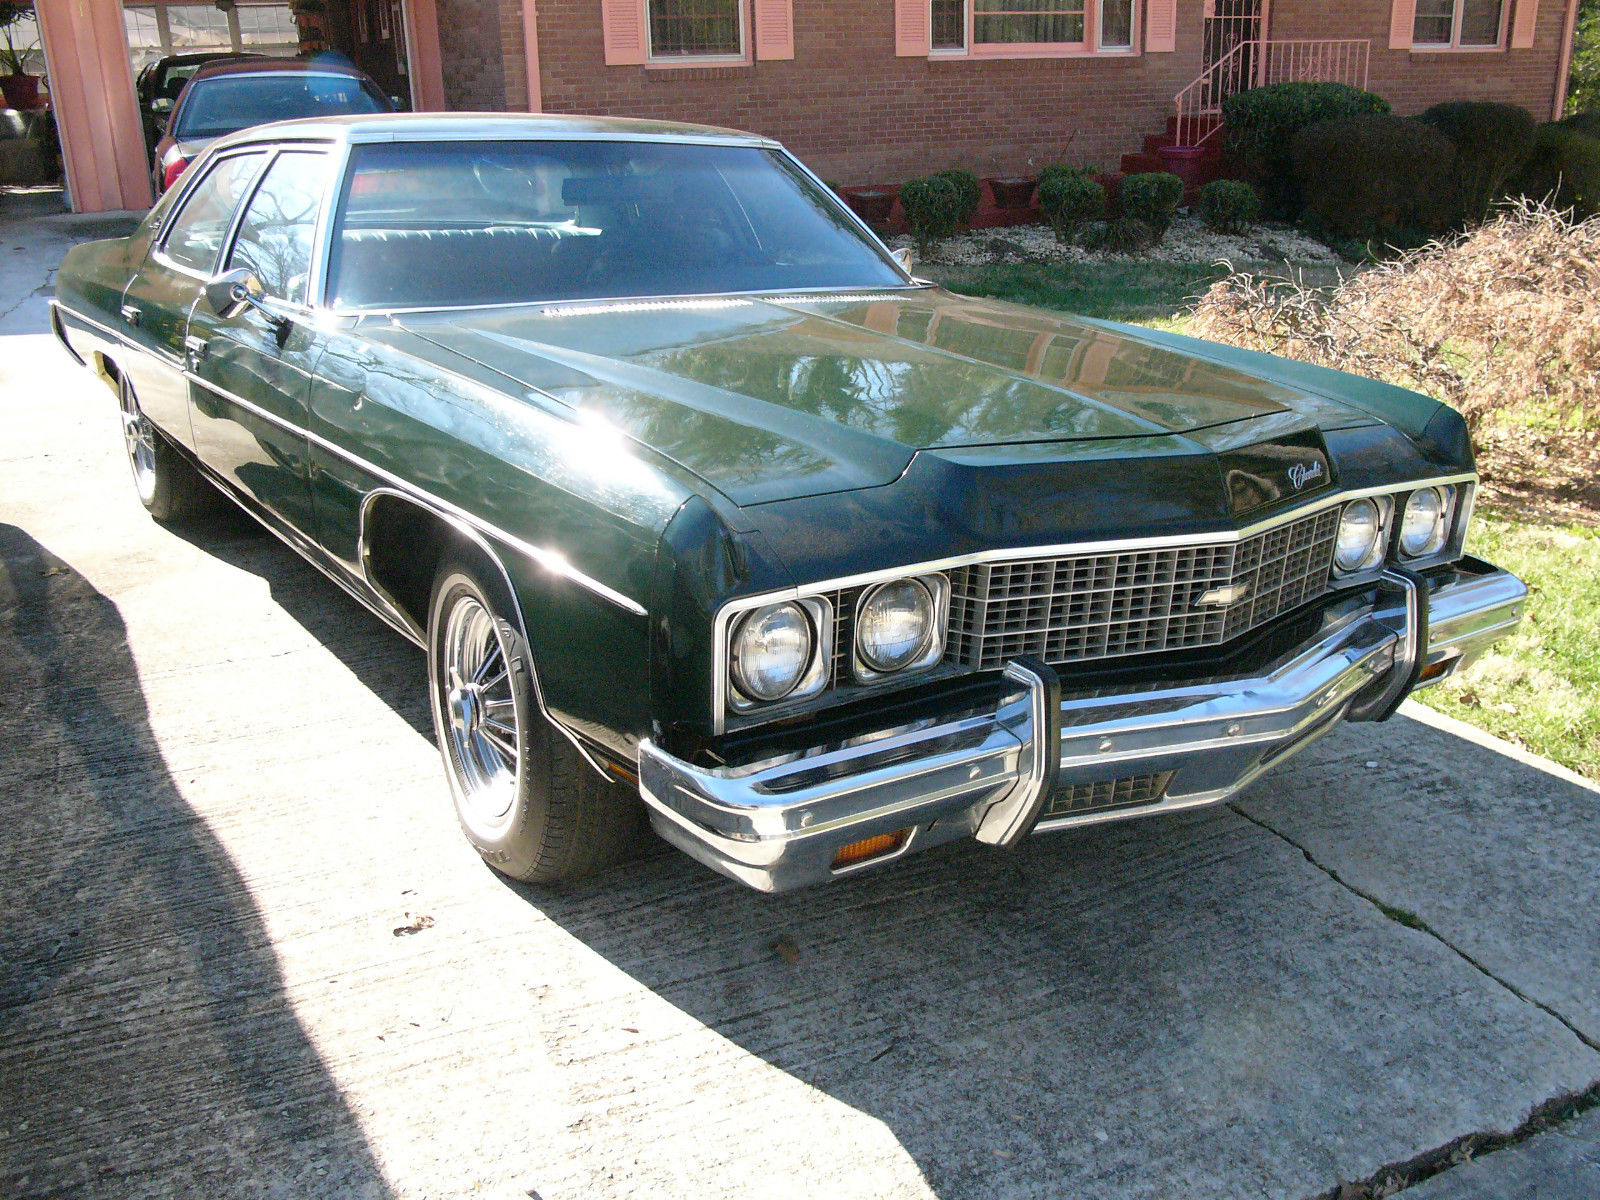 1973 chevrolet impala 4 door green on green classic chevrolet impala 1973 for sale. Black Bedroom Furniture Sets. Home Design Ideas